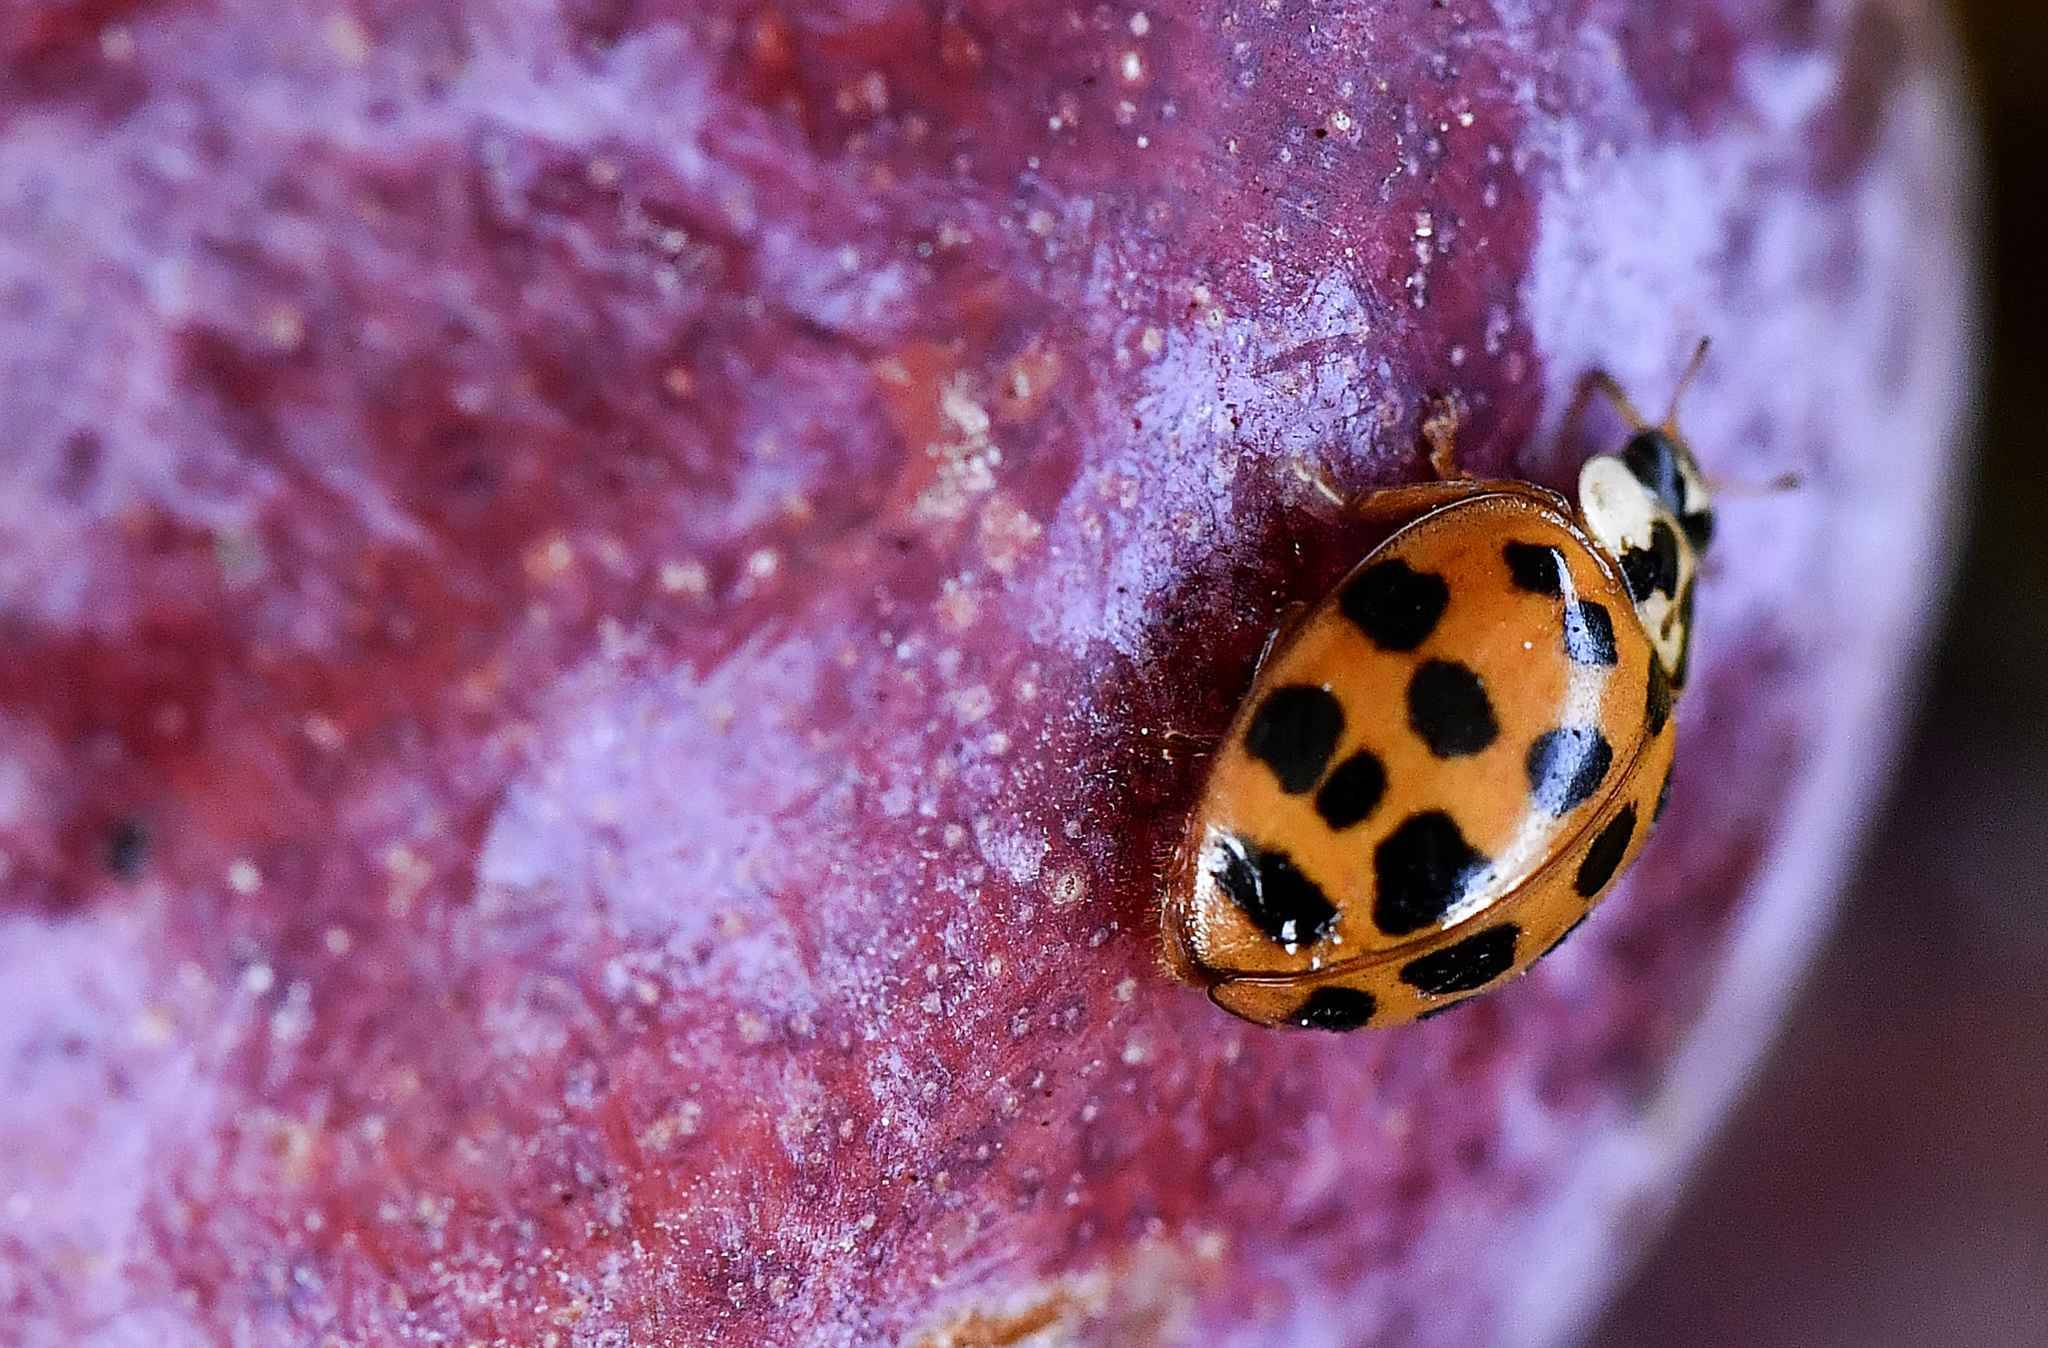 Asian ladybeetle (Harmonia axyridis) is seen on a plum on September 4, 2018, at a farm in Levignac-de-Guyenne, near Agen.